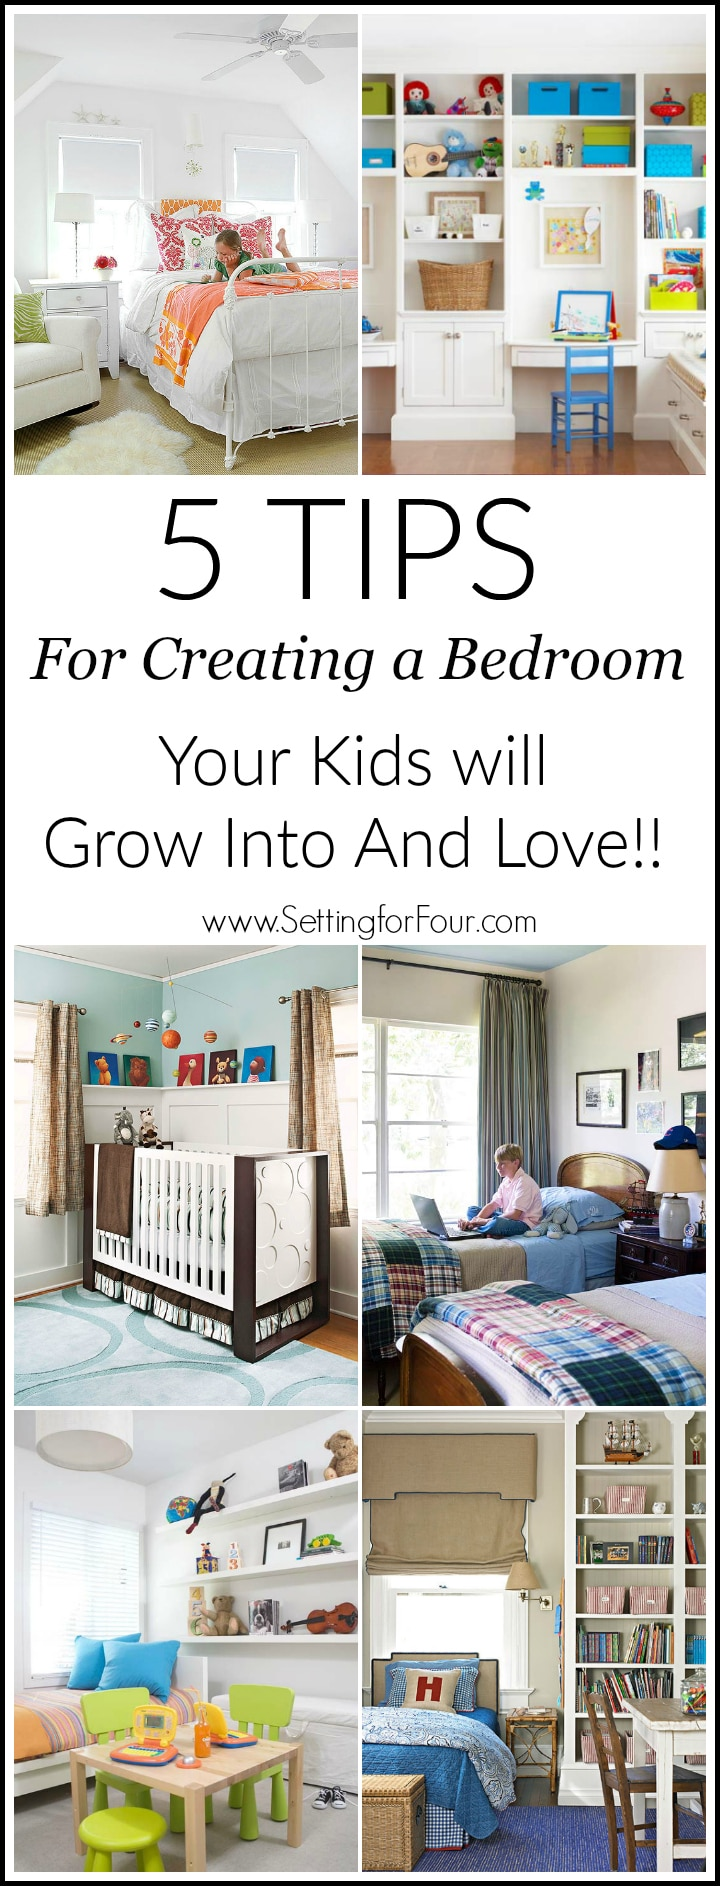 Save money and time! 5 Tips for Creating a Kids Bedroom They Will Grow Into and Love! Avoid redecorating their rooms every time they find a new favorite color or interest. Timeless styles and fun decor ideas.